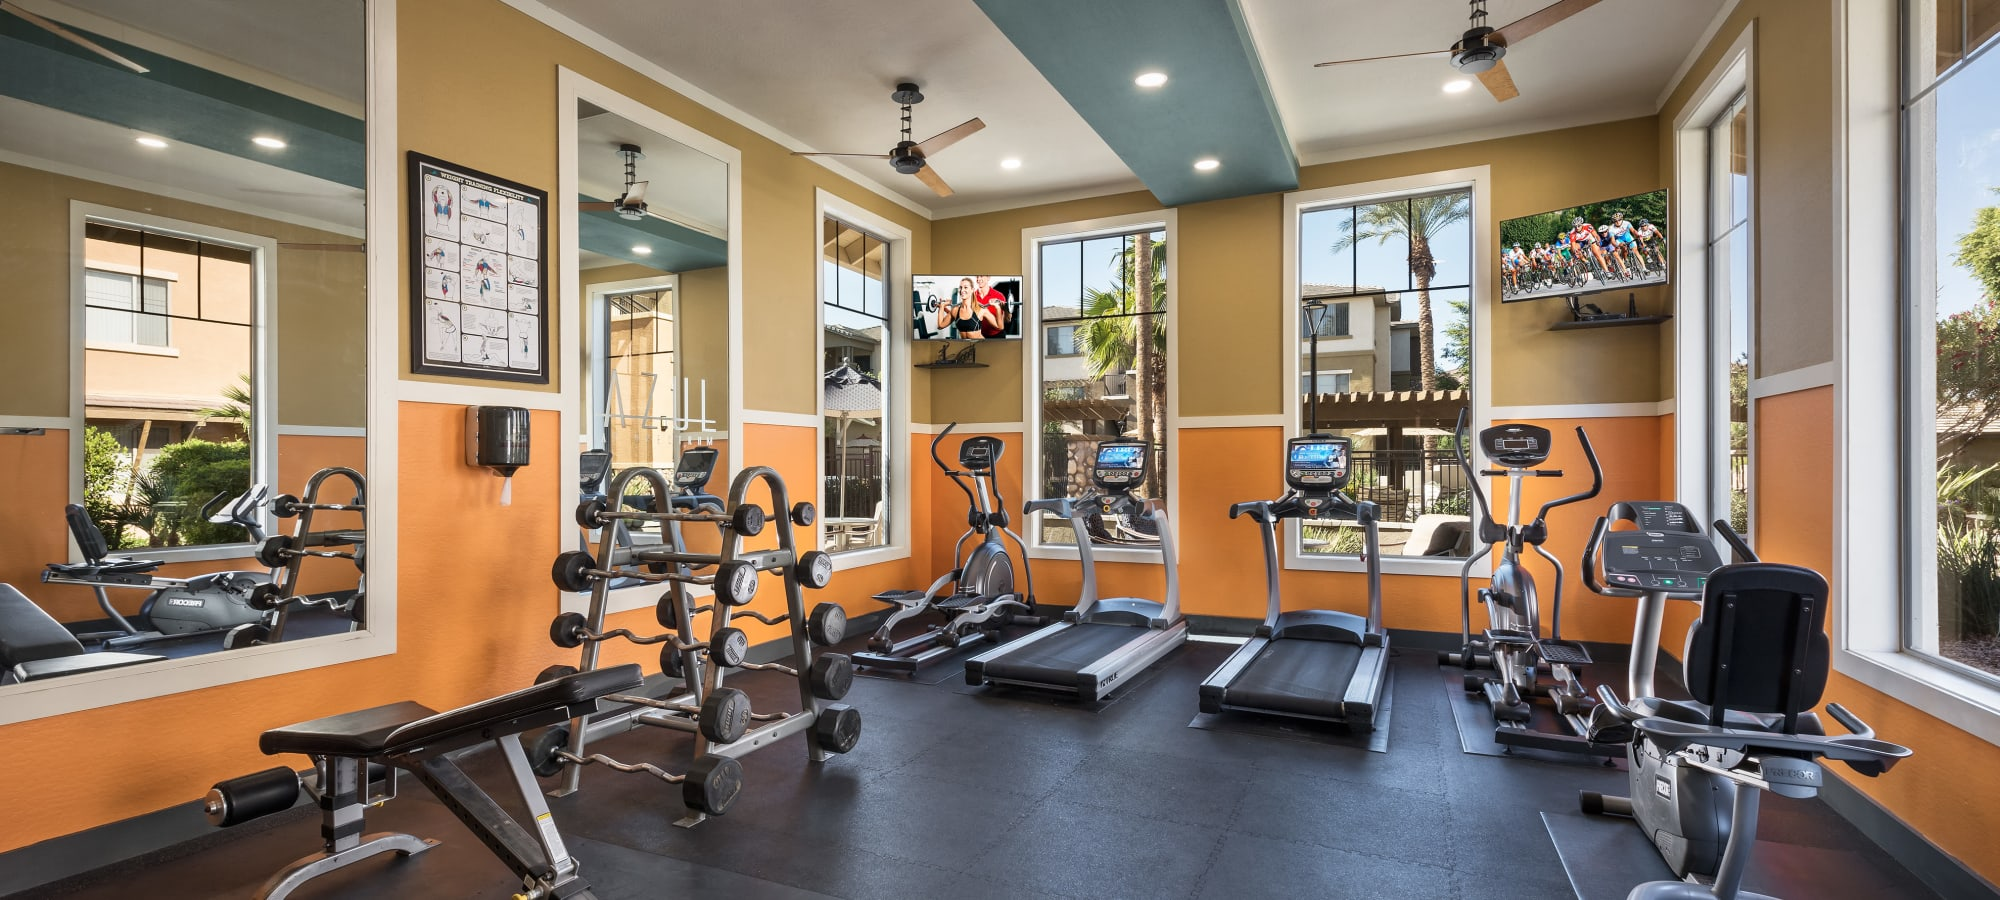 Gym at Azul at Spectrum